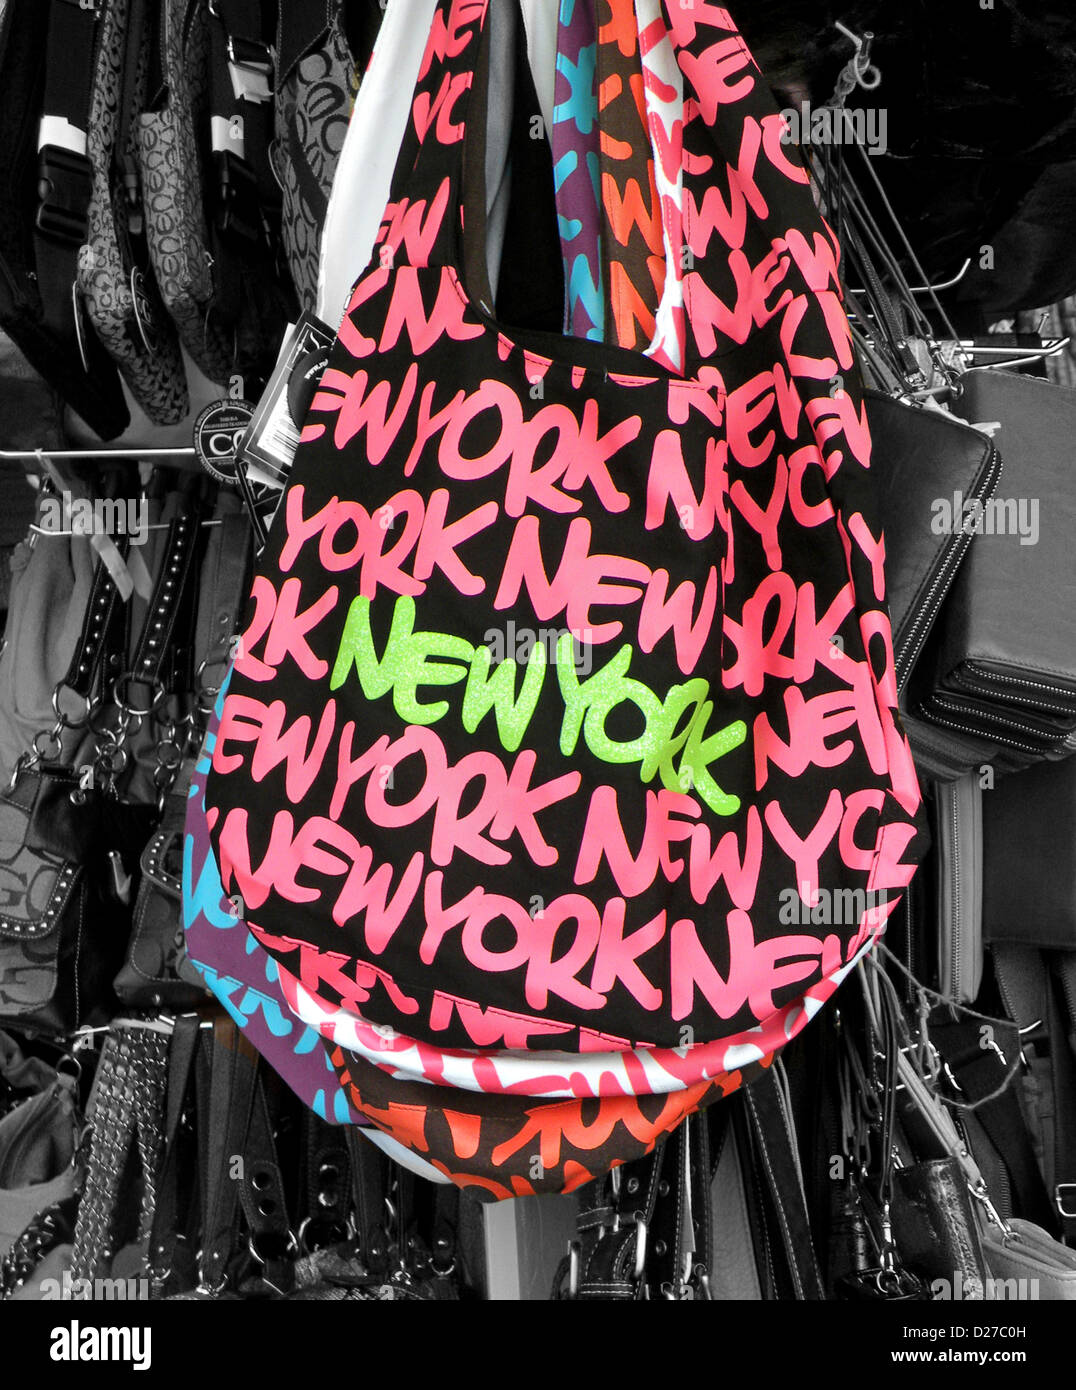 66e394fc1059 NEW YORK Handbag for sale in a Chinatown tourist shop on Canal Street in  lower Manhattan. Colors manipulated in Photoshop.